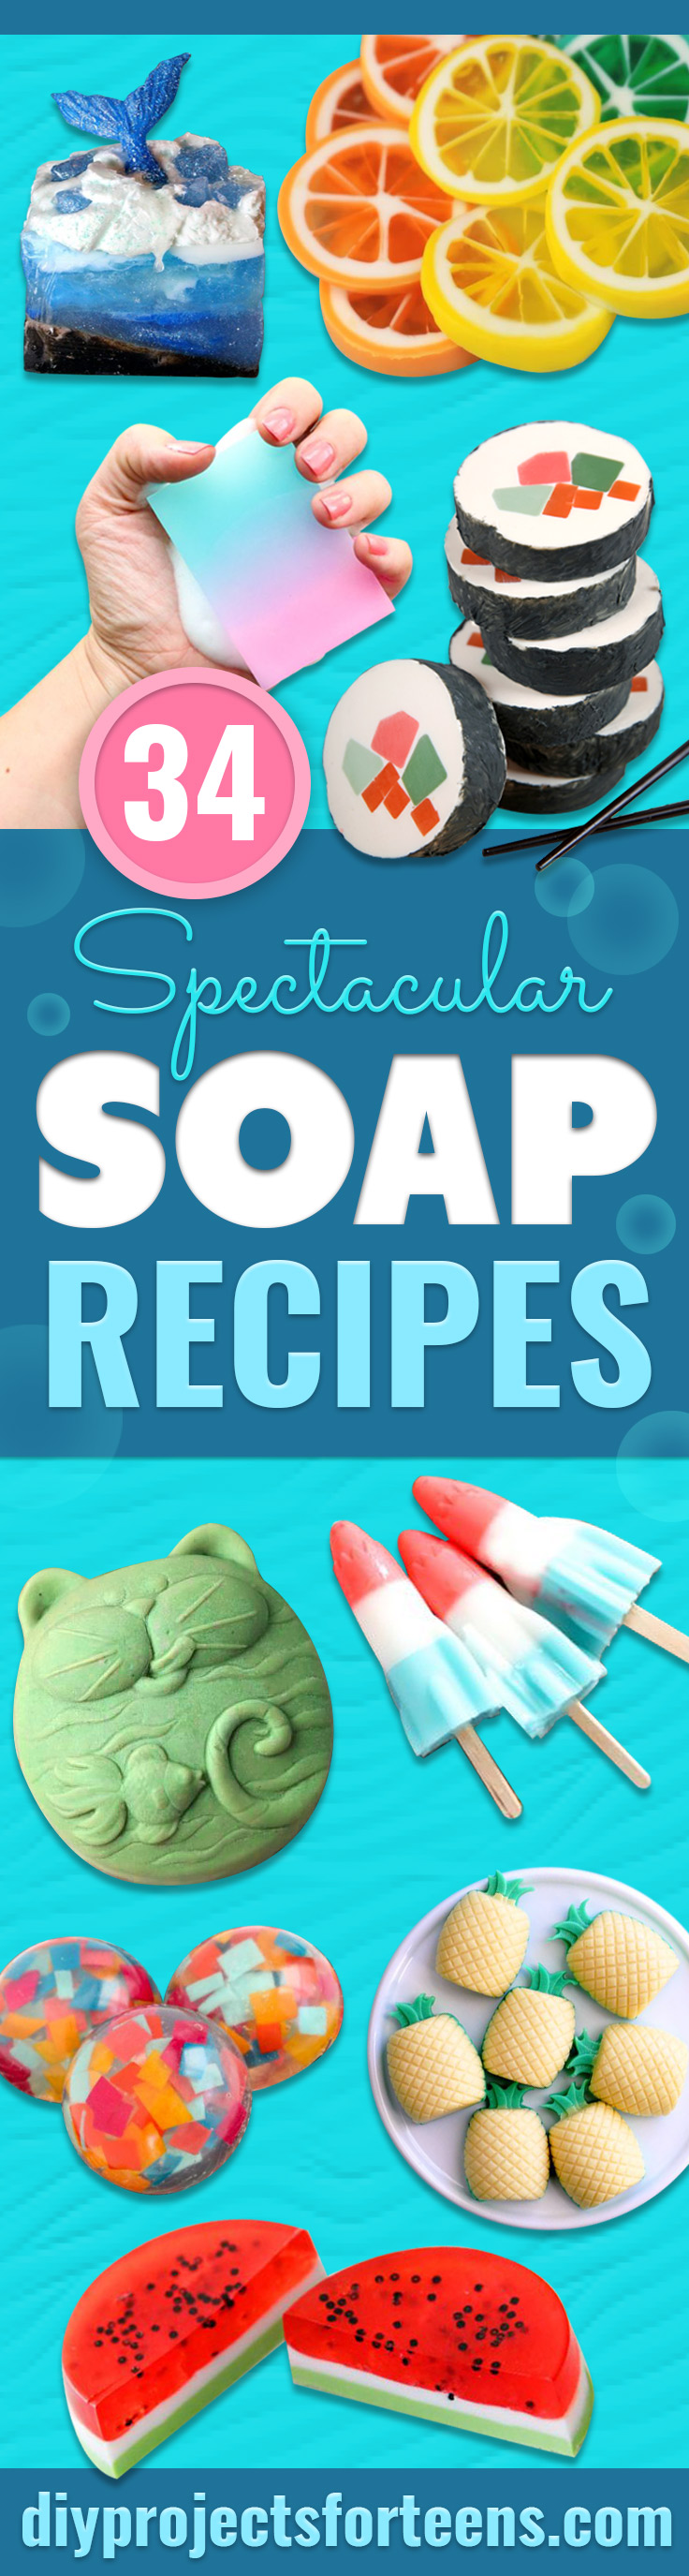 Soap Recipes DIY - DIY Soap Recipe Ideas - Best Soap Tutorials for Soap Making Without Lye - Easy Cold Process Melt and Pour Tips for Beginners - Crockpot, Essential Oils, Homemade Natural Soaps and Products - Creative Crafts and DIY for Teens, Kids and Adults #soaprecipes #diygifts #soapmaking